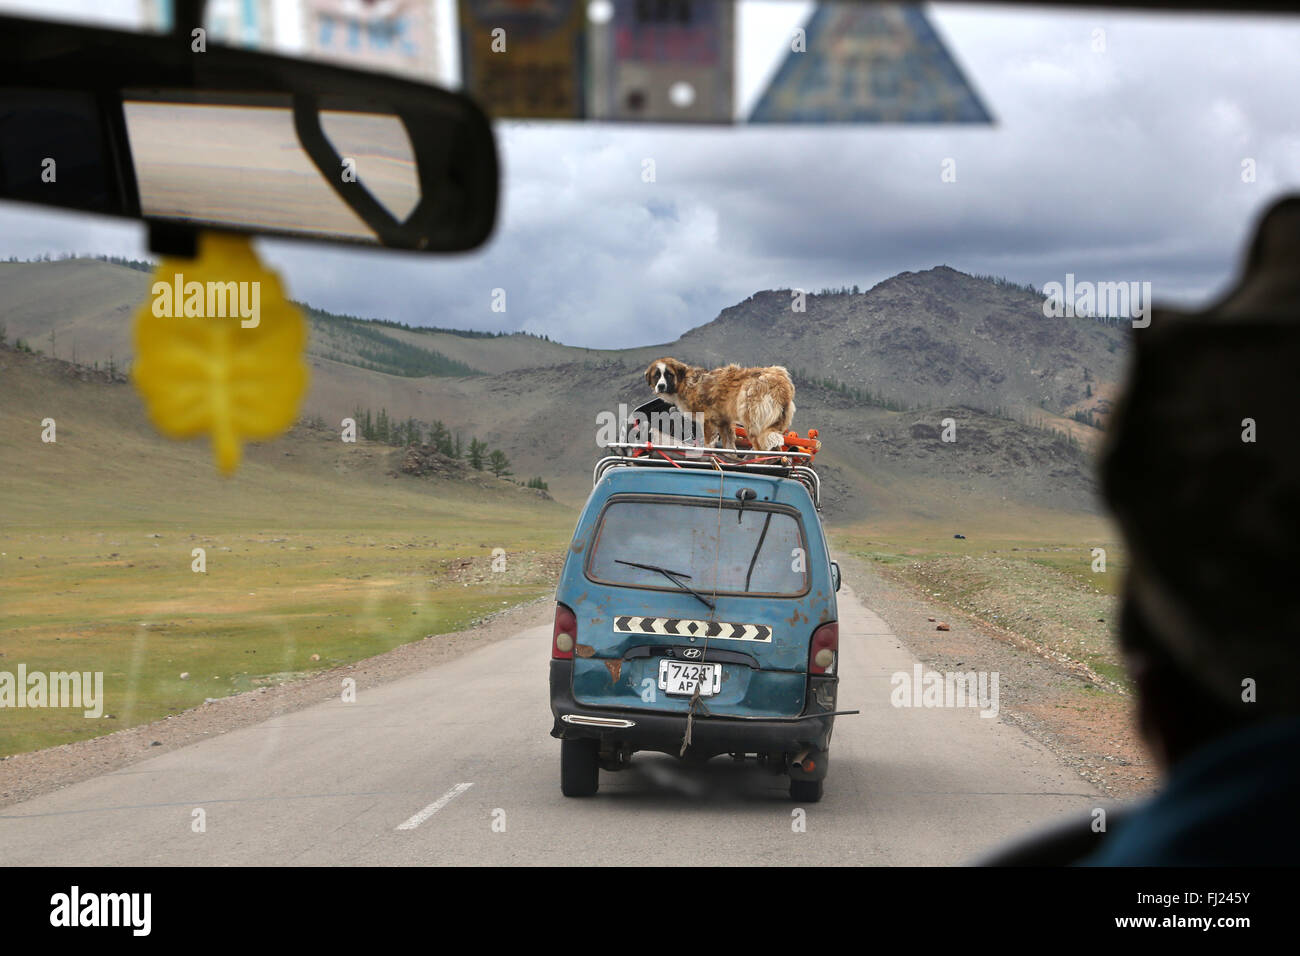 Dog transported on a car in Mongolia - Stock Image